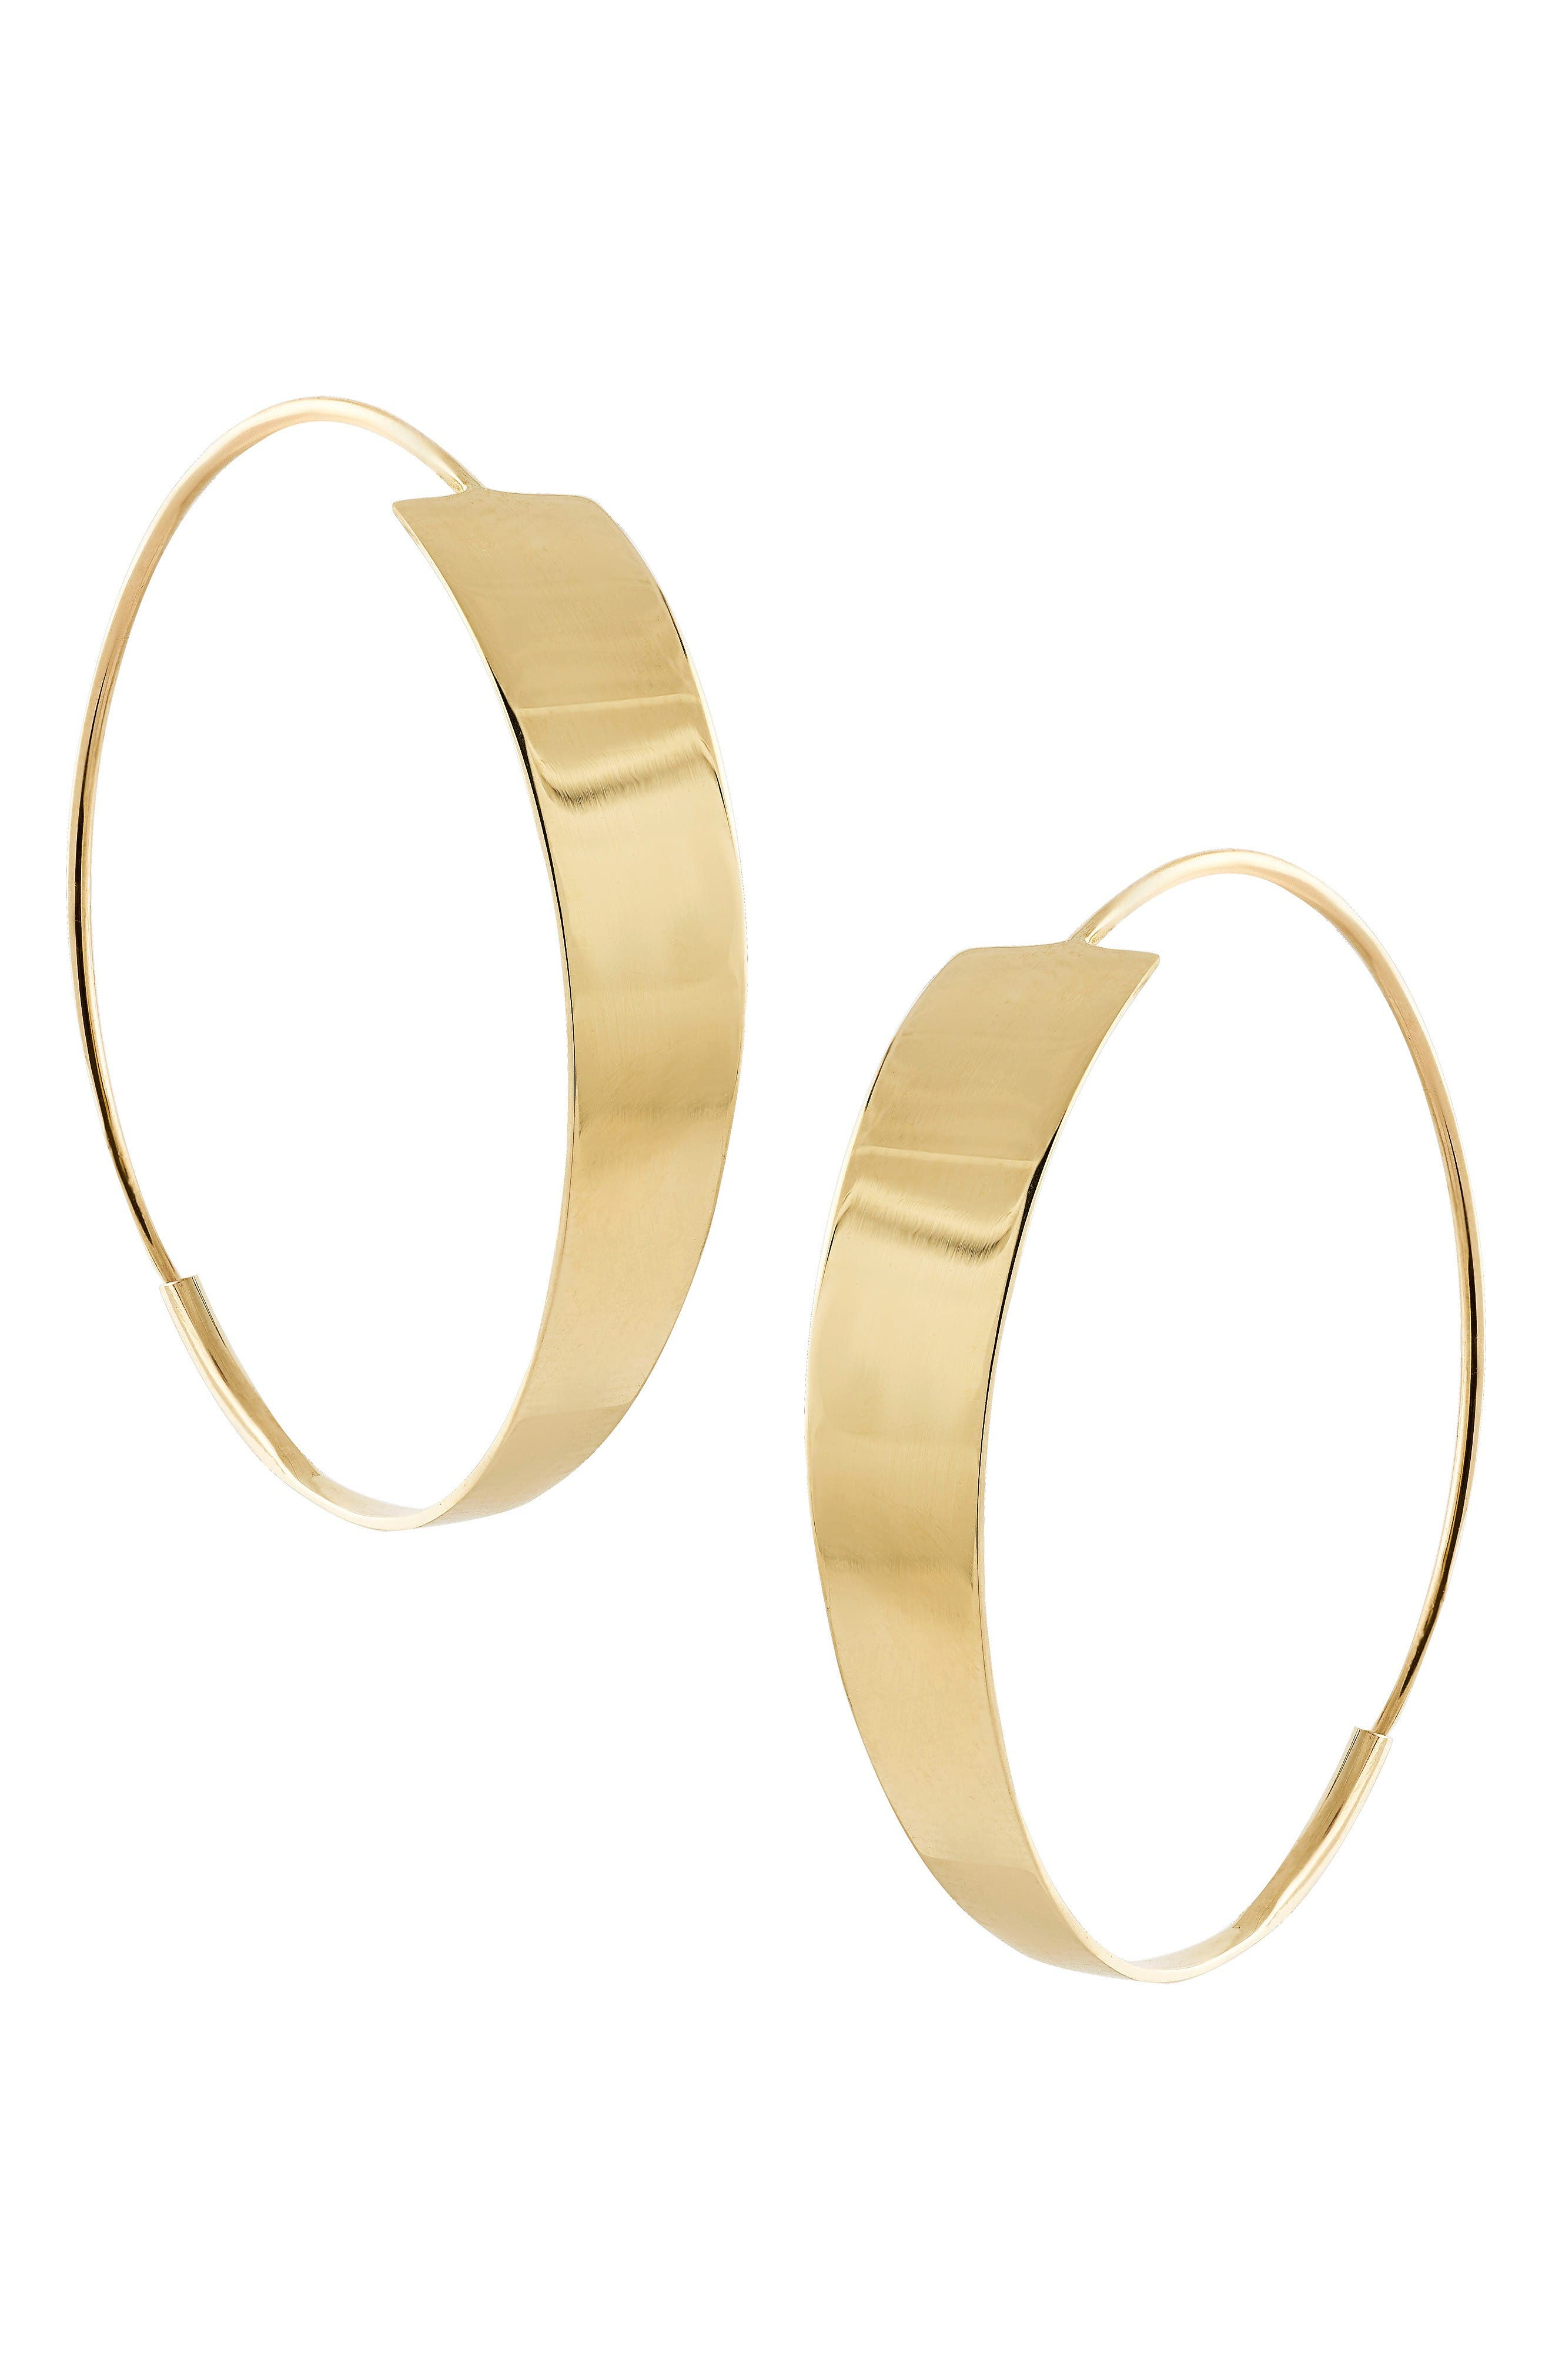 Bond Small Magic Hoop Earrings,                         Main,                         color, Yellow Gold